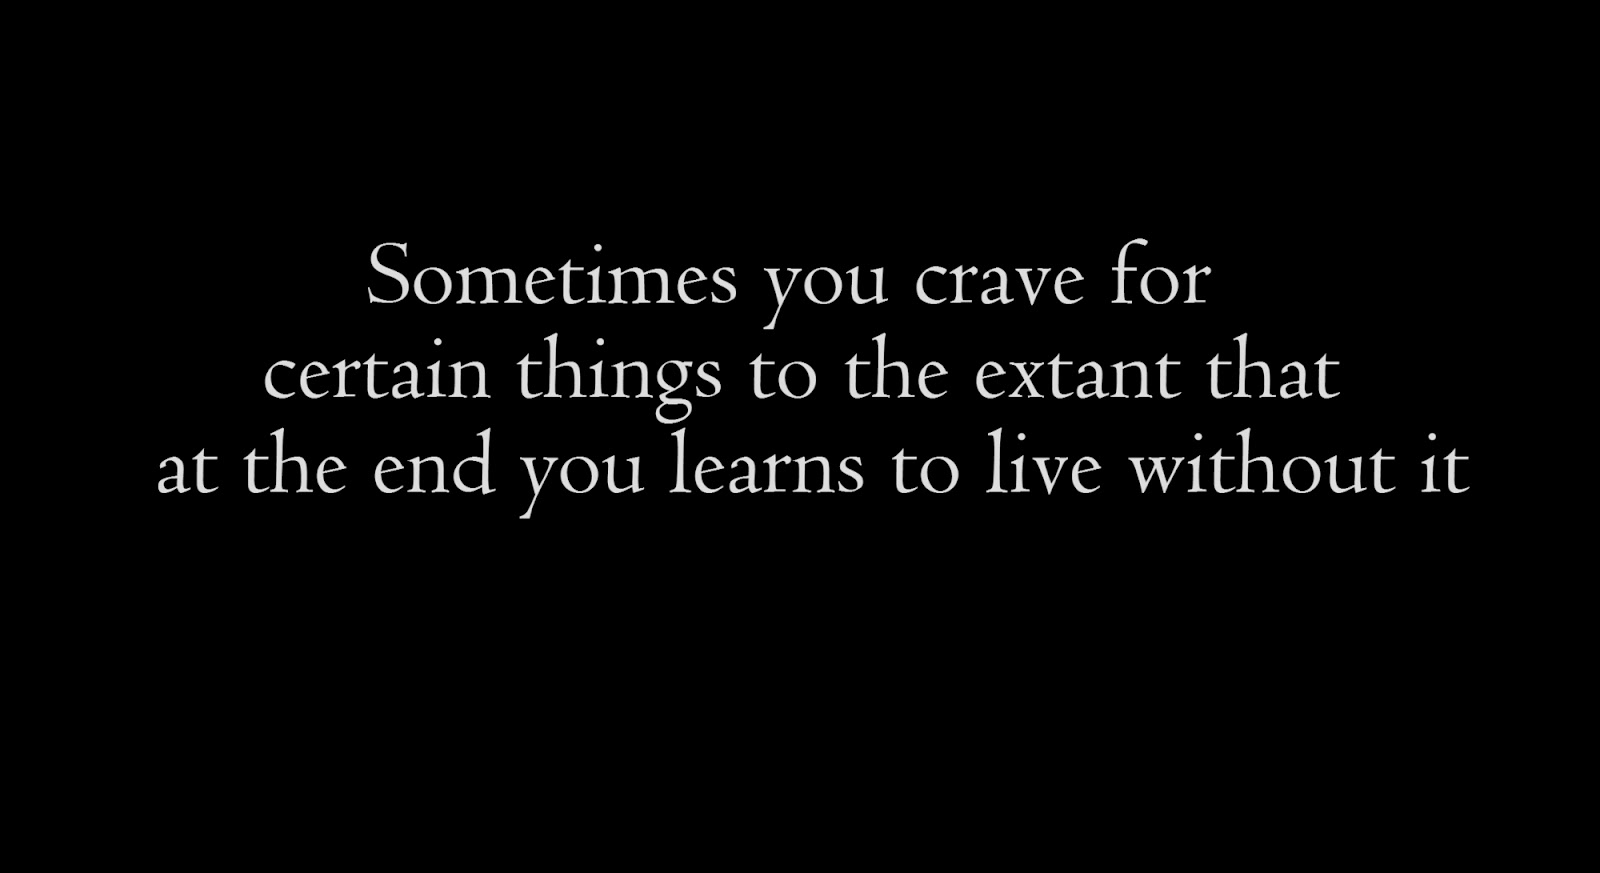 Sometimes you crave for certain things to the extant that at the end you learns to live without it